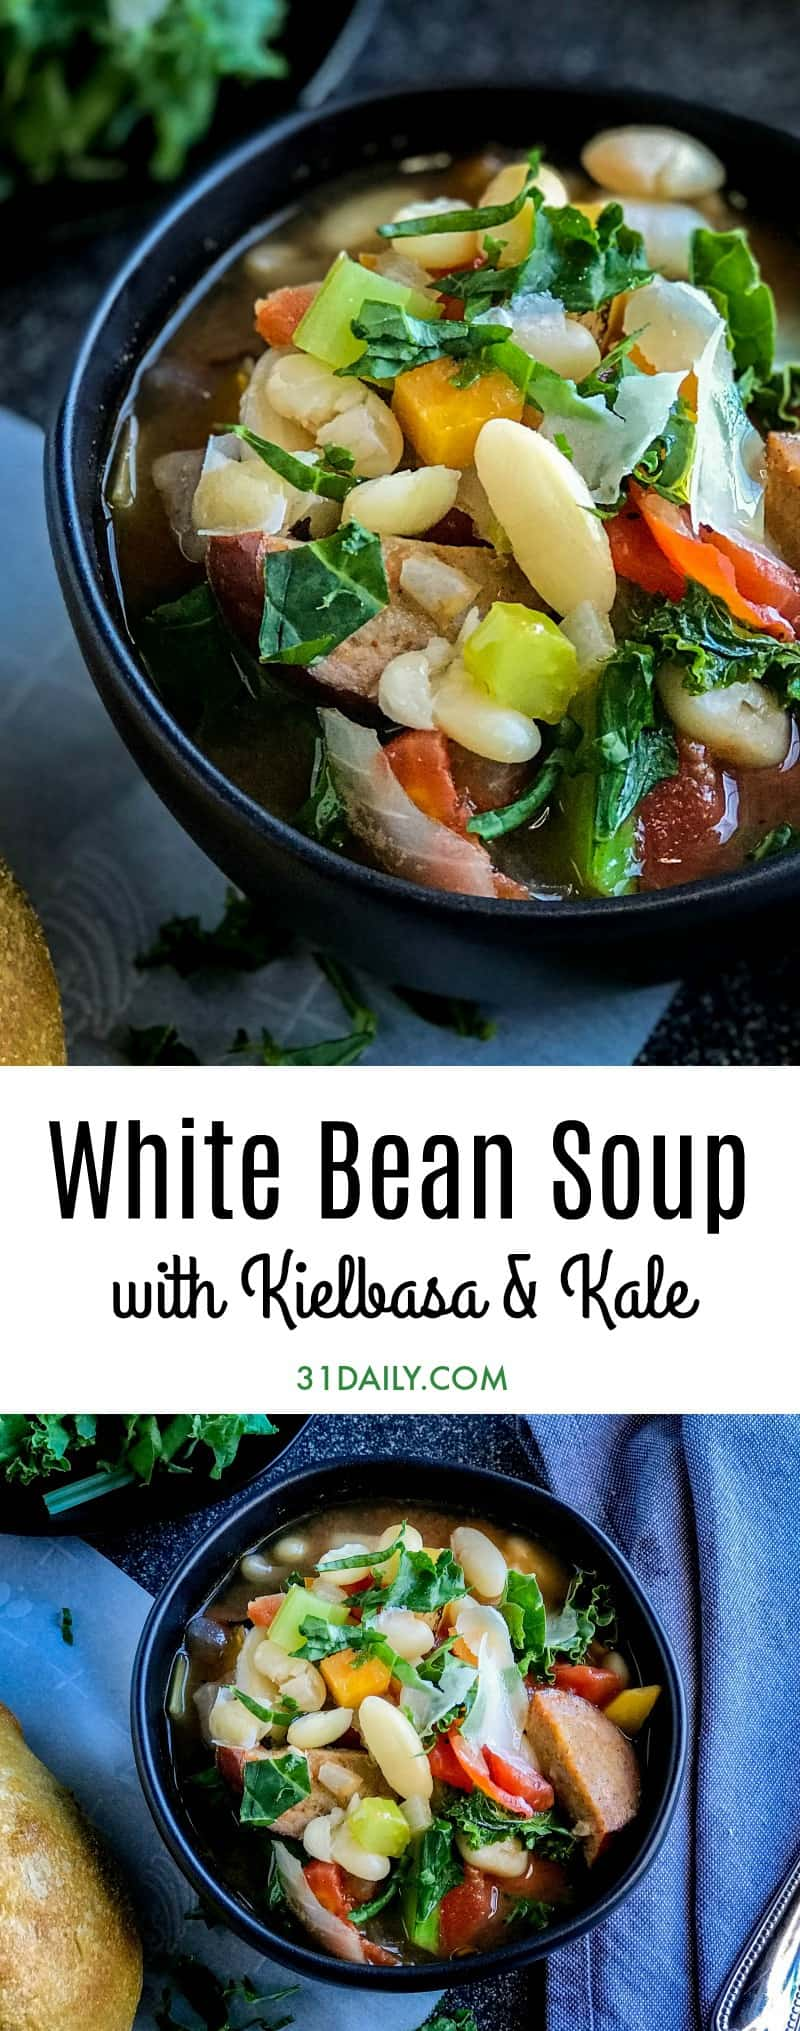 White Bean Soup with Smoked Turkey Kielbasa Sausage and Kale | 31Daily.com